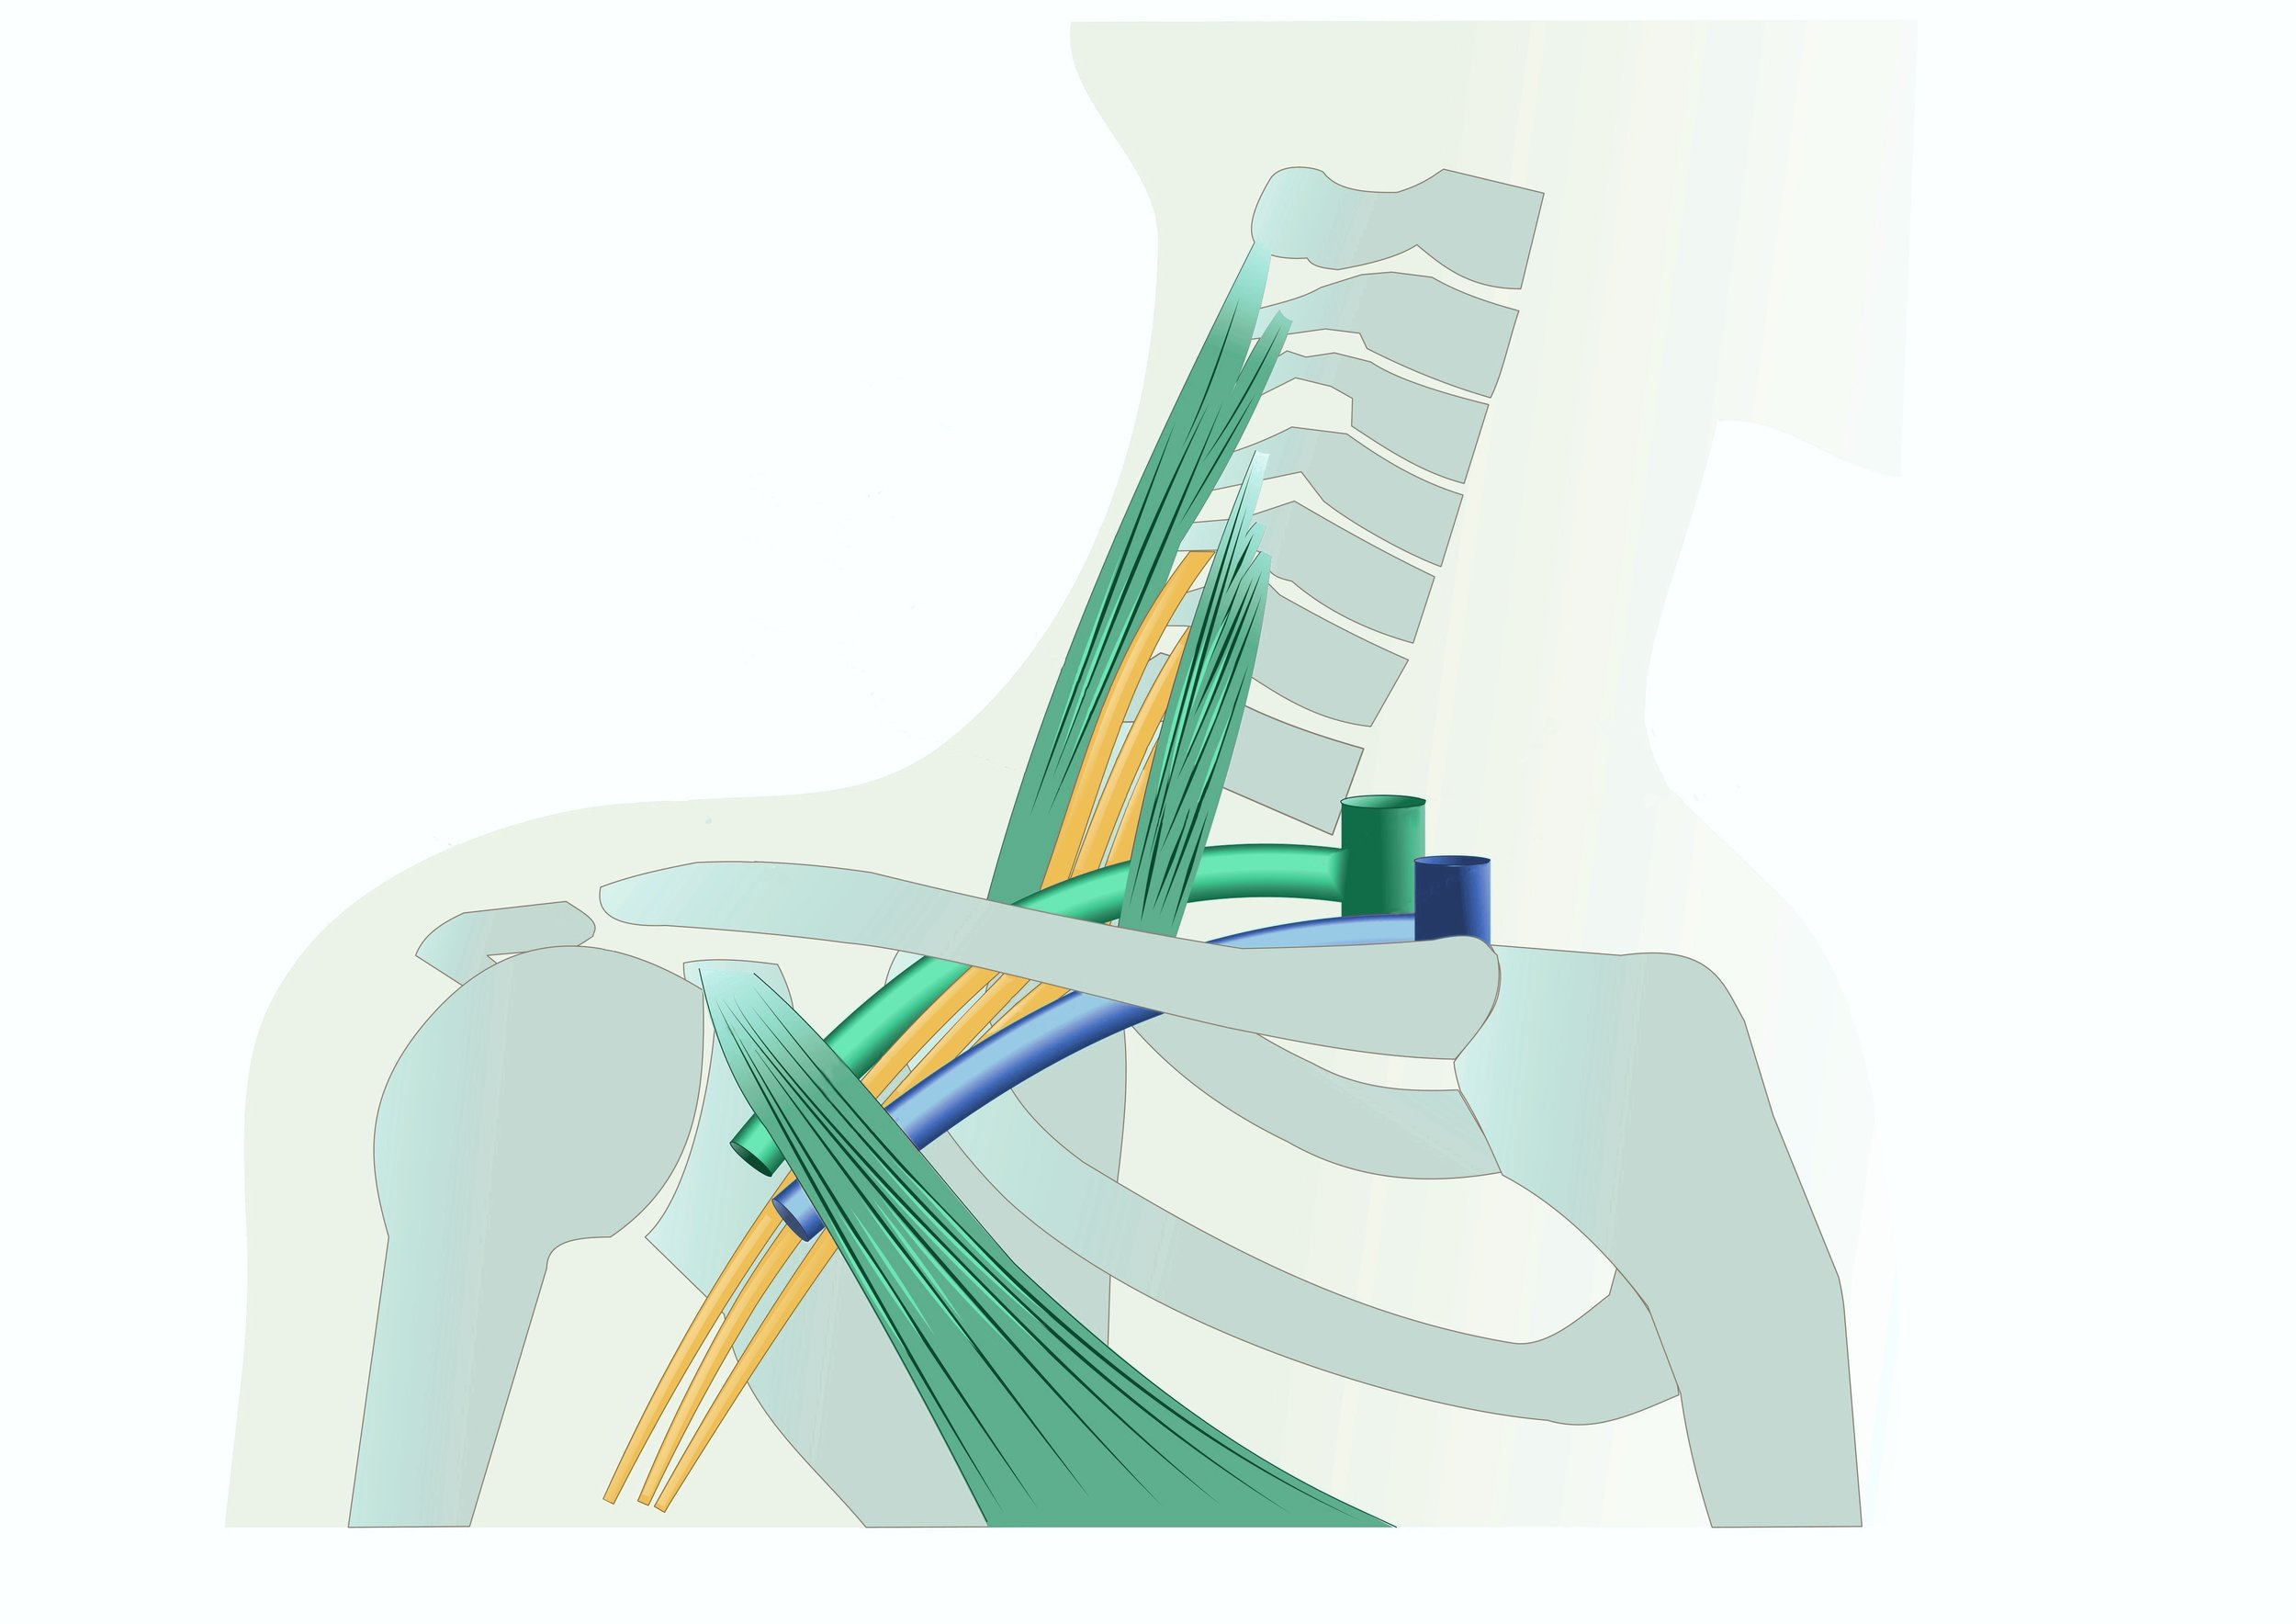 thoratic-outlet-syndrome_integrated-physicians-medical-group_the-integrated-brain-and-spine-center-for-functional-neurology-and-medicine.jpg